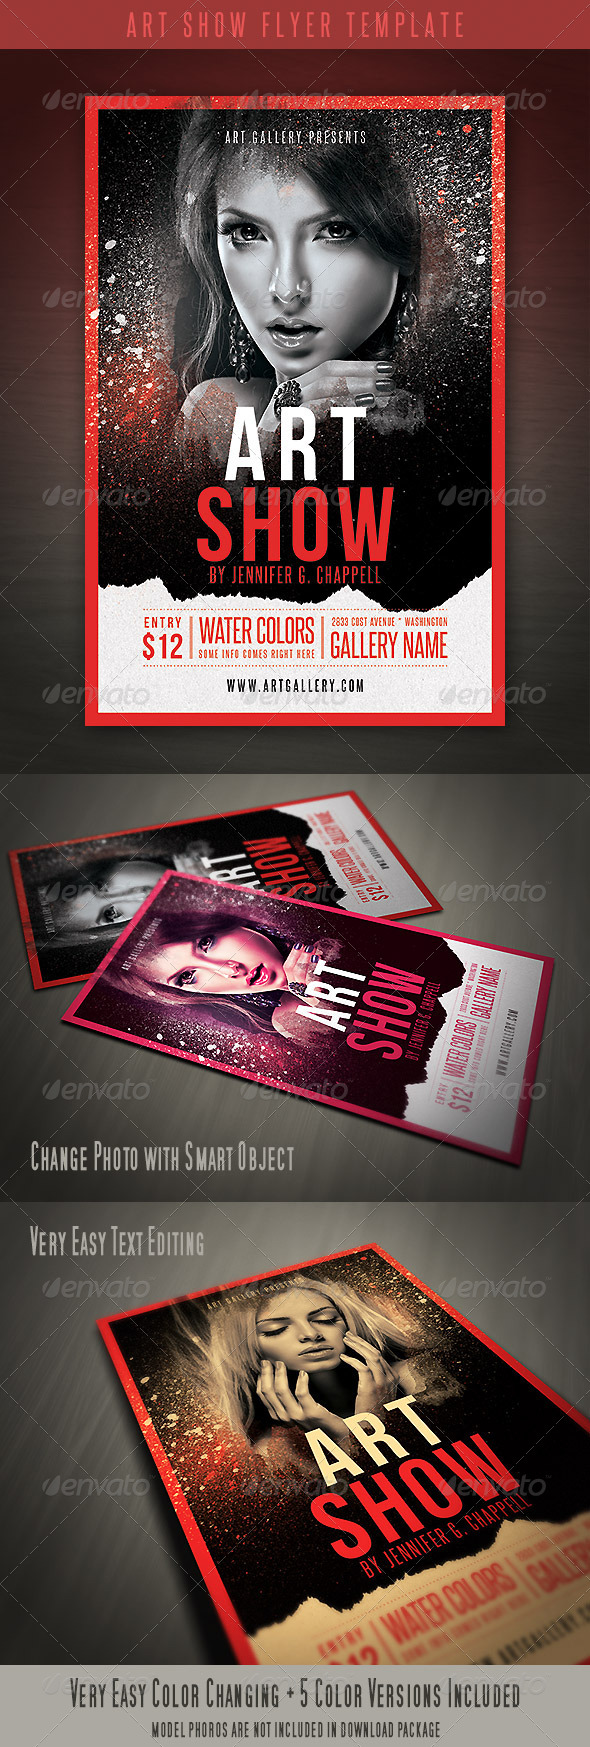 GraphicRiver Art Show Flyer Template 4416045